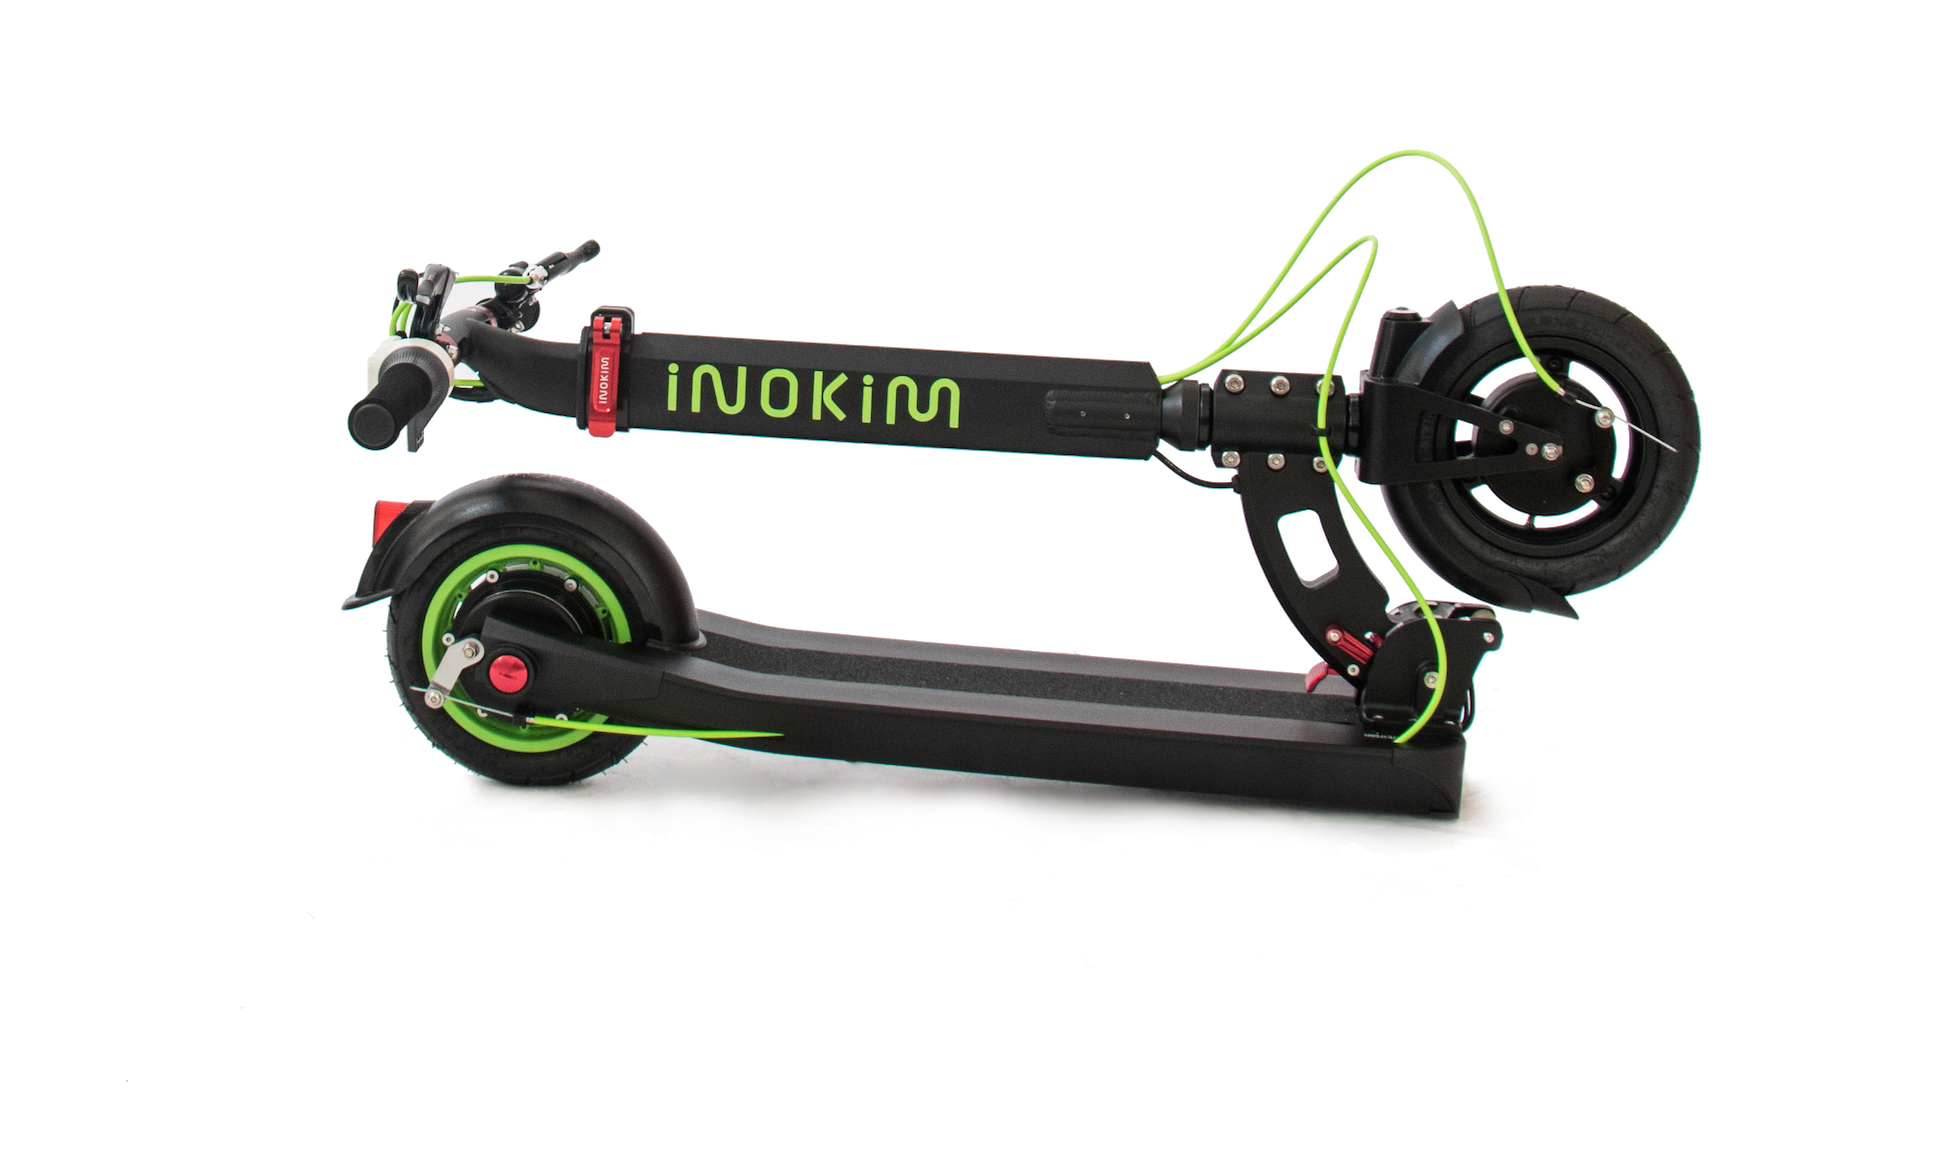 Inokim Light 2 Electric Scooter Folding Capabilities